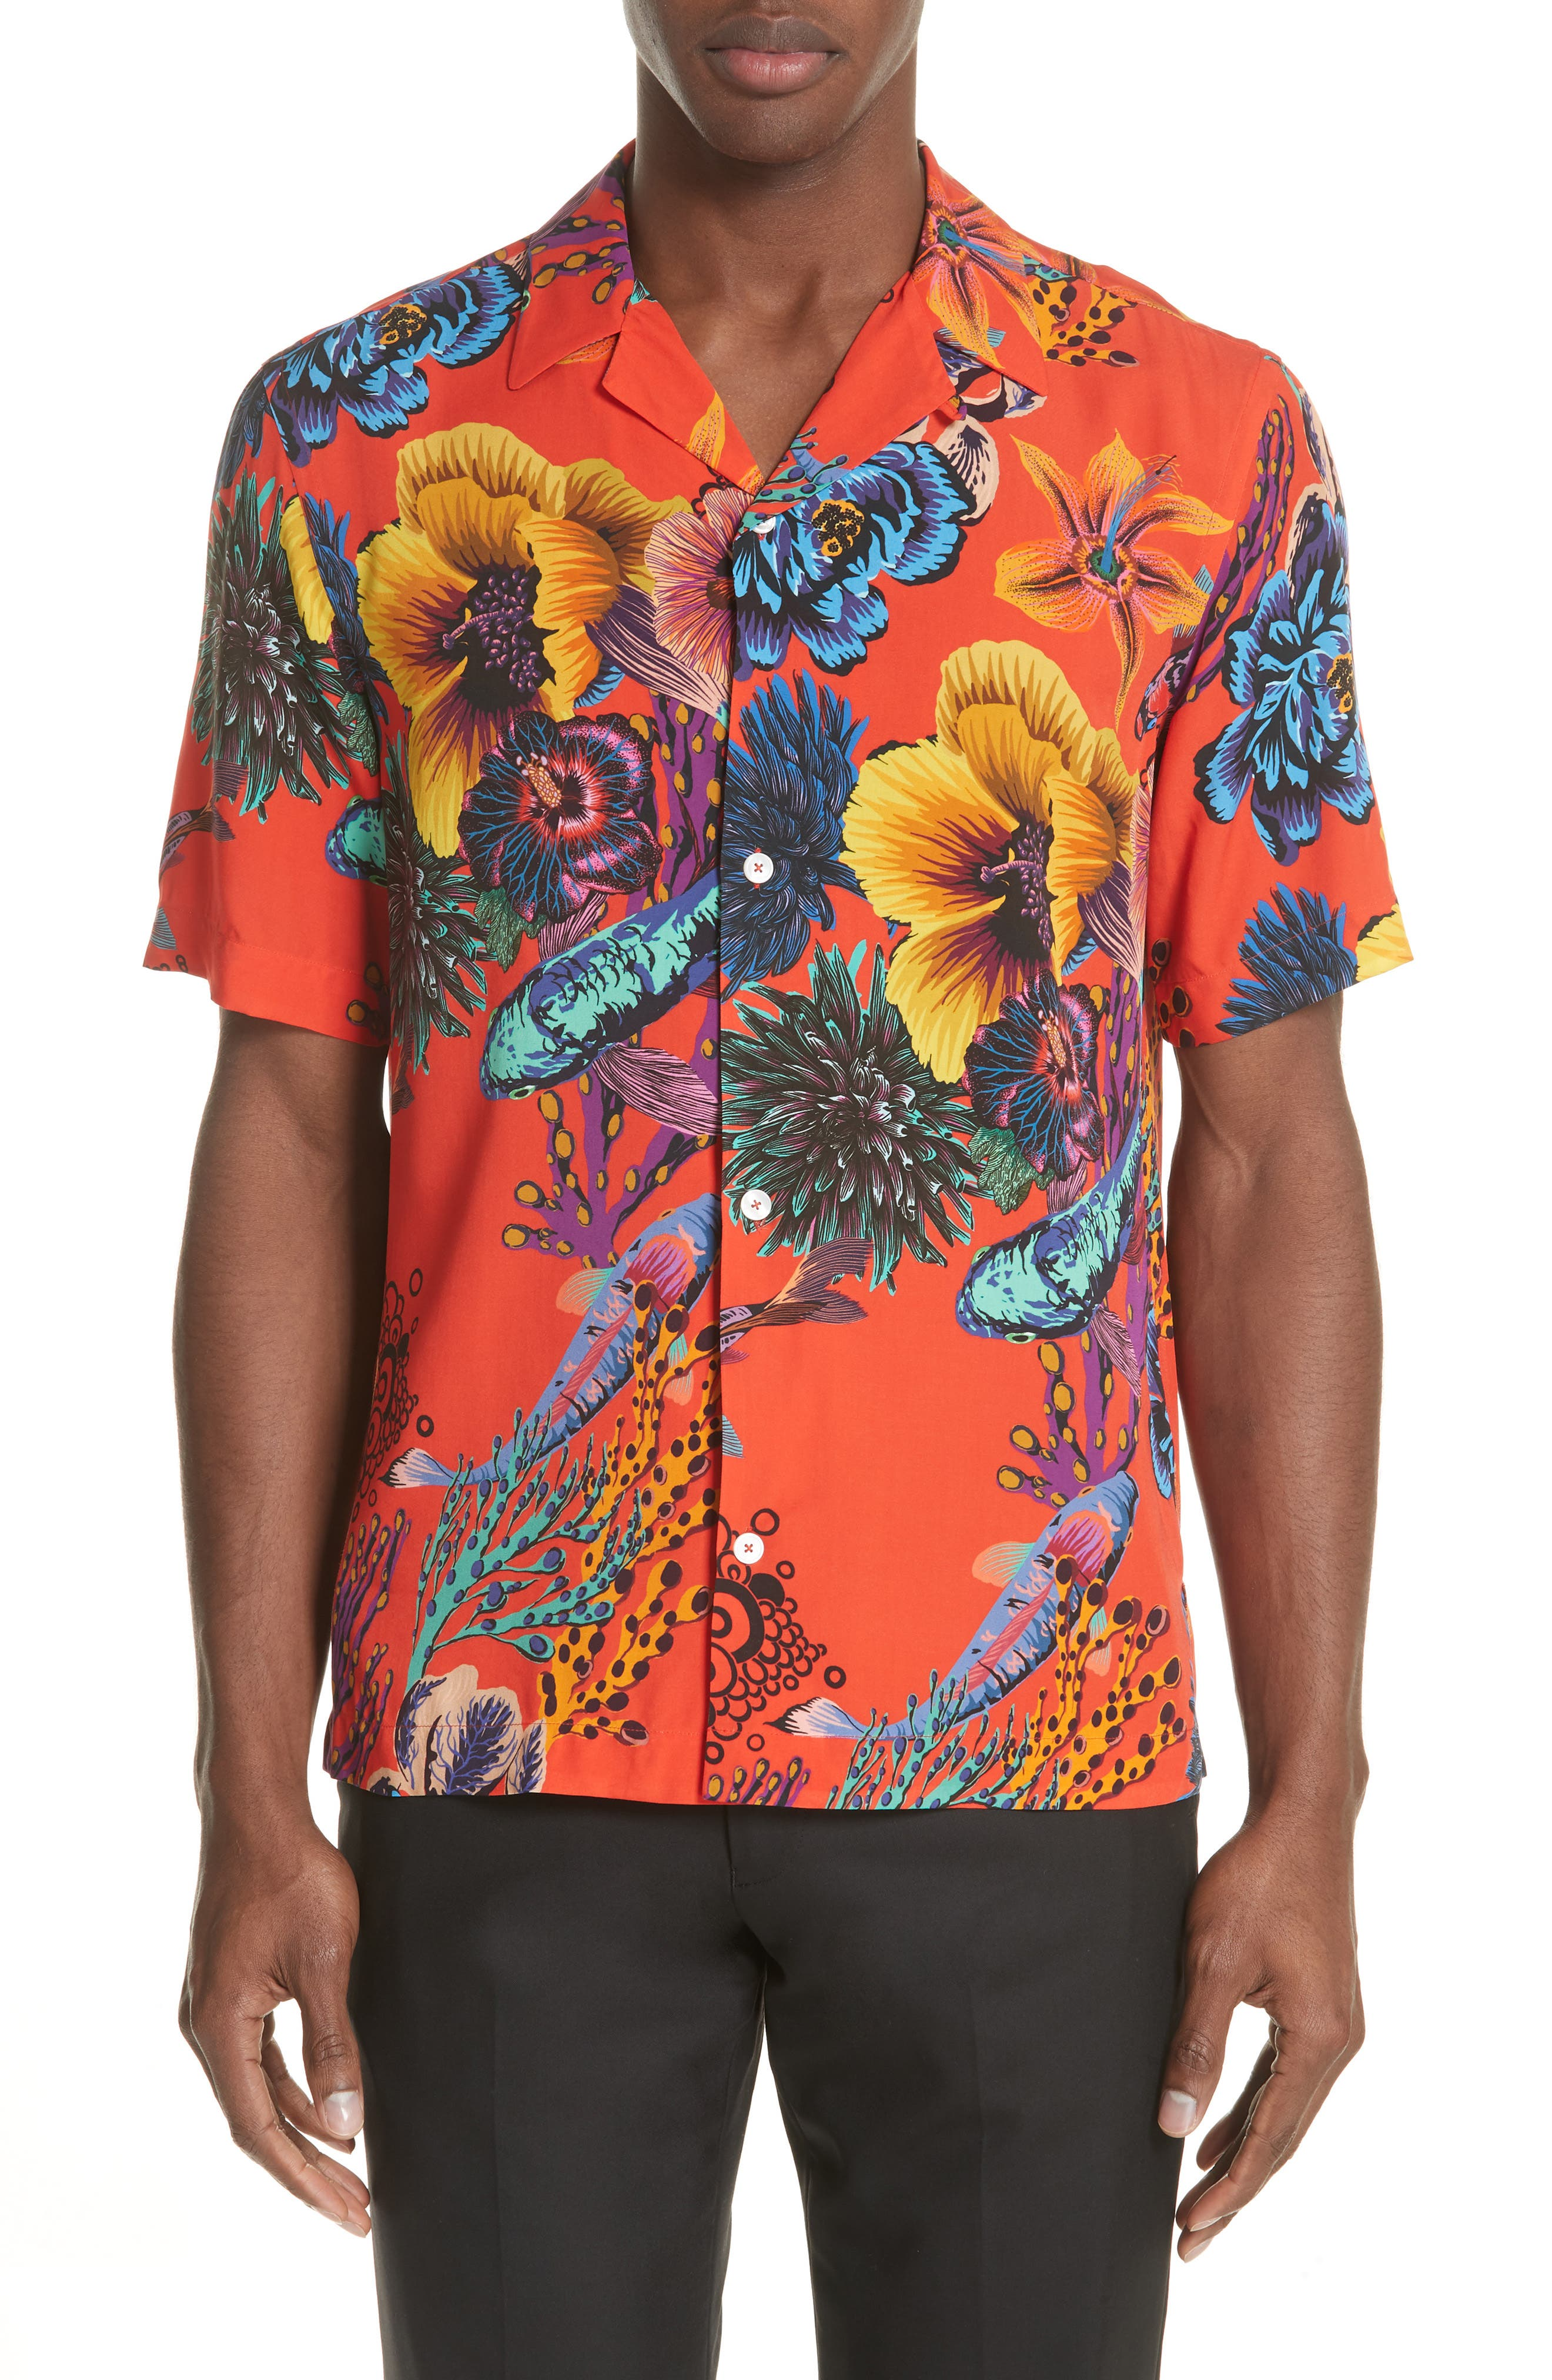 Paul Smith Fishes Print Shirt